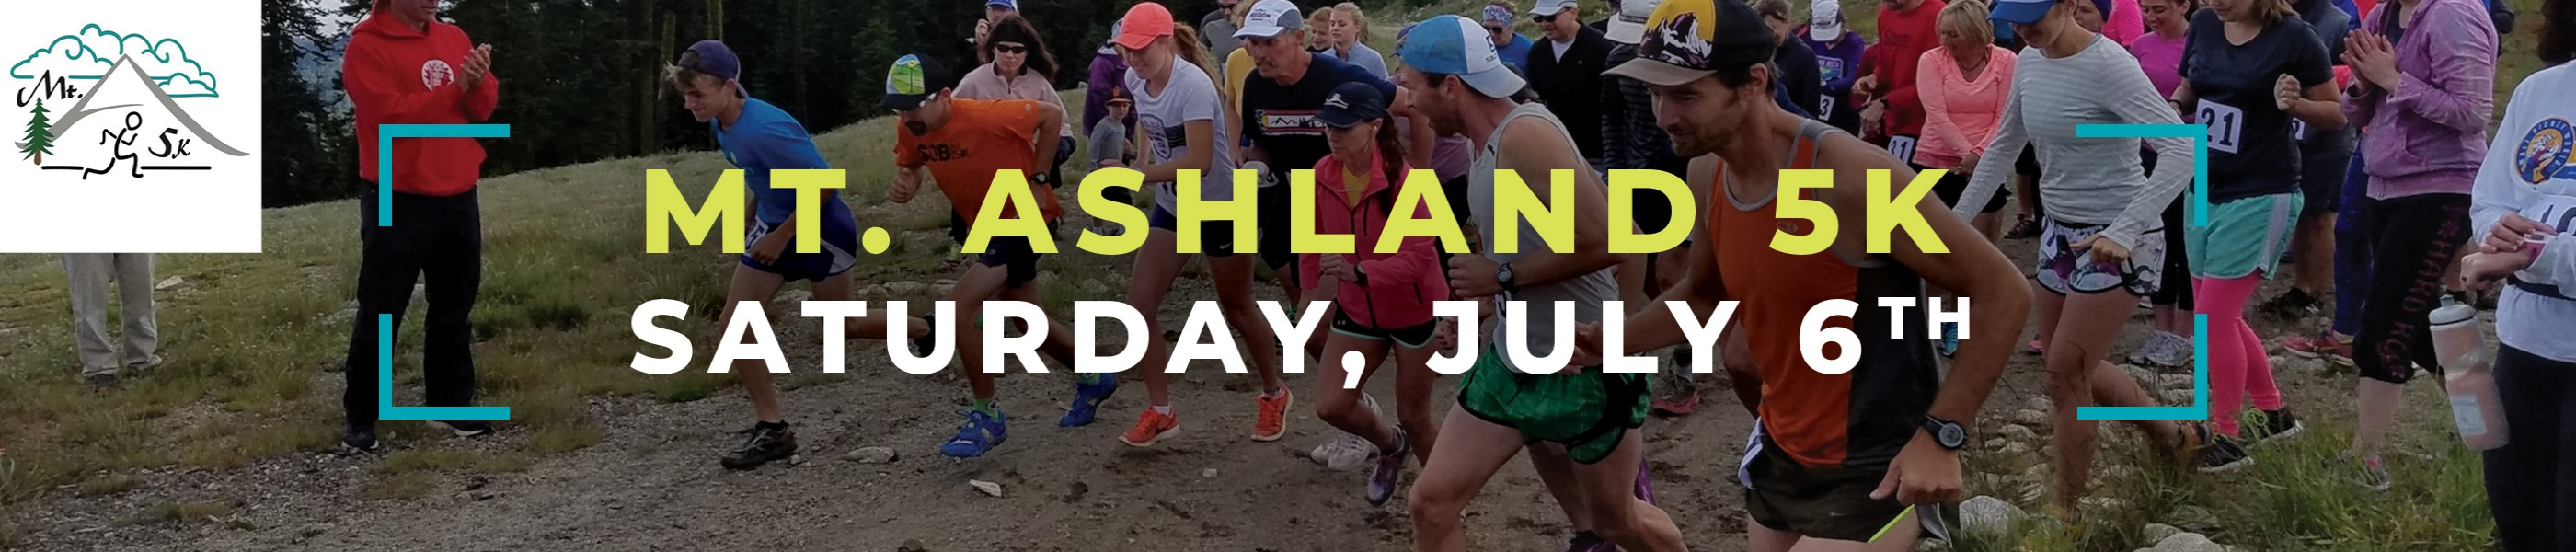 Mt. Ashland 5K in Ashland Oregon